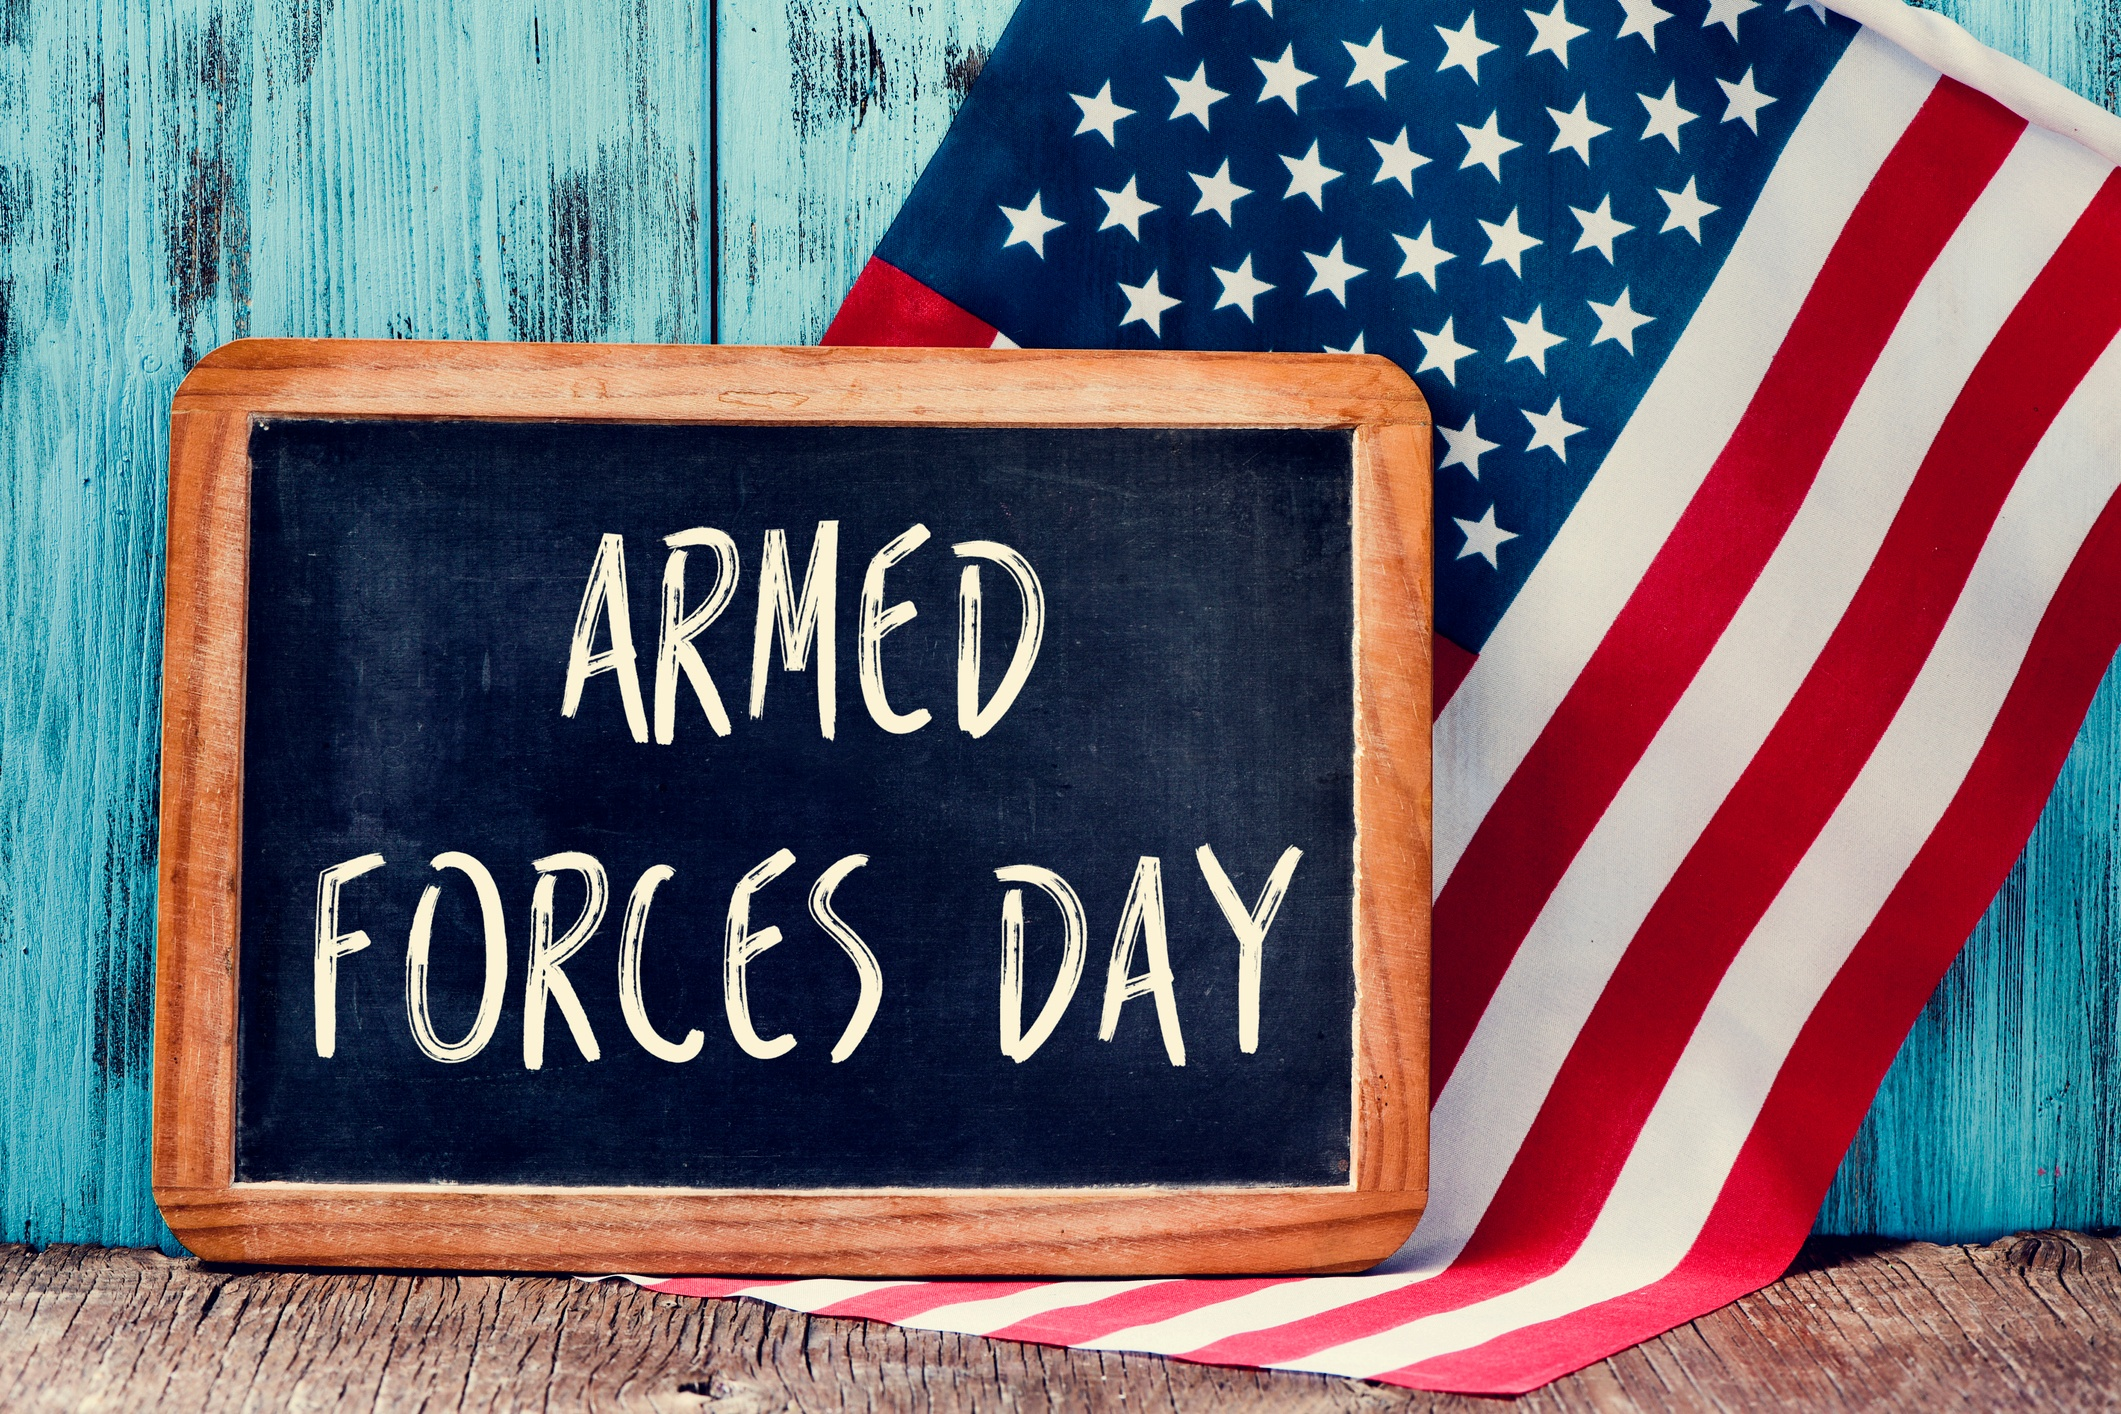 Celebrate-Armed-Forces-Day-Cincinnati.jpg